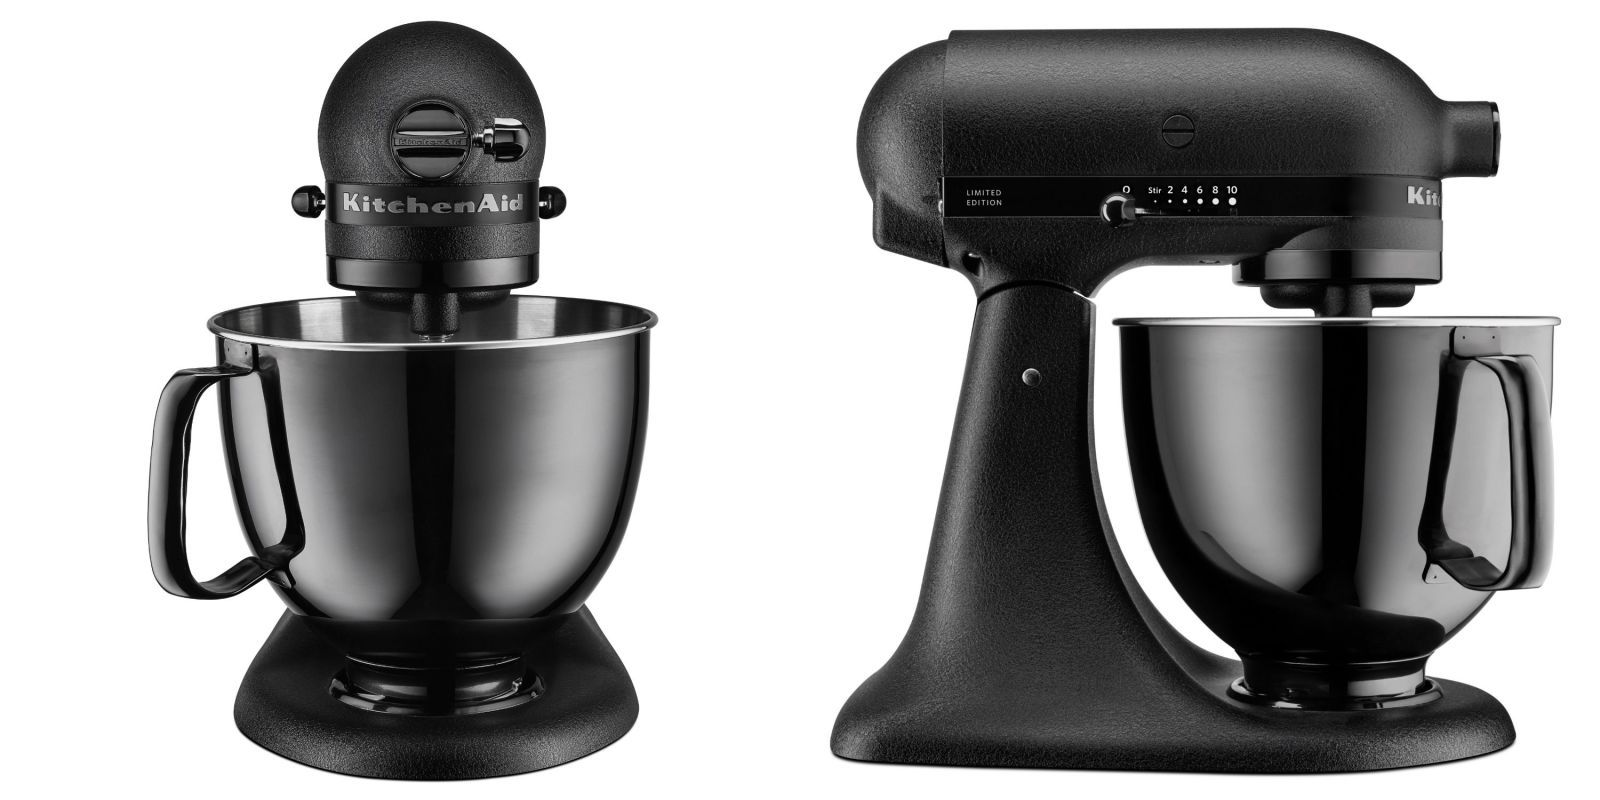 Kitchenaid Just Debuted An All Black Mixer And Omg It S Chic